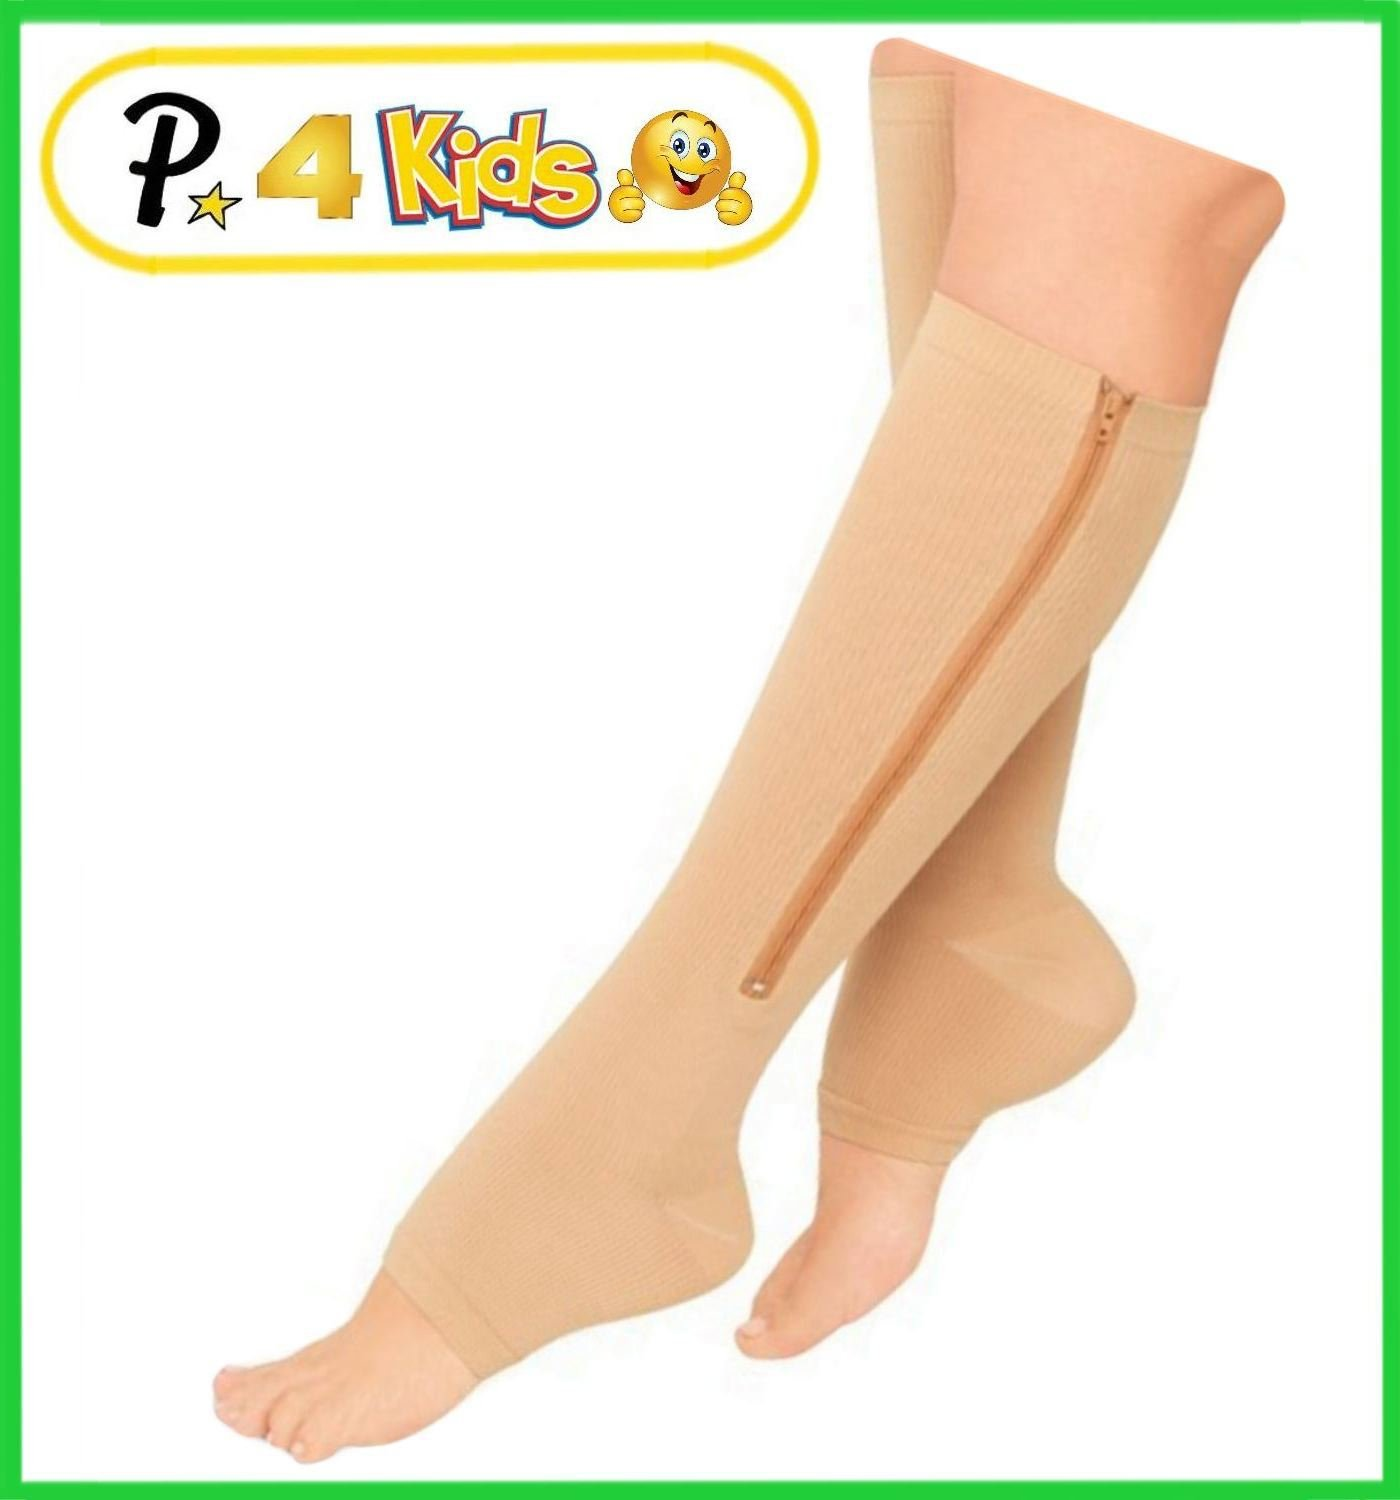 Presadee Kid's Edition Easy Zipper Compression Socks Knee Length Energize Leg Circulation Performance Fatigue Support (L/XL, Beige)